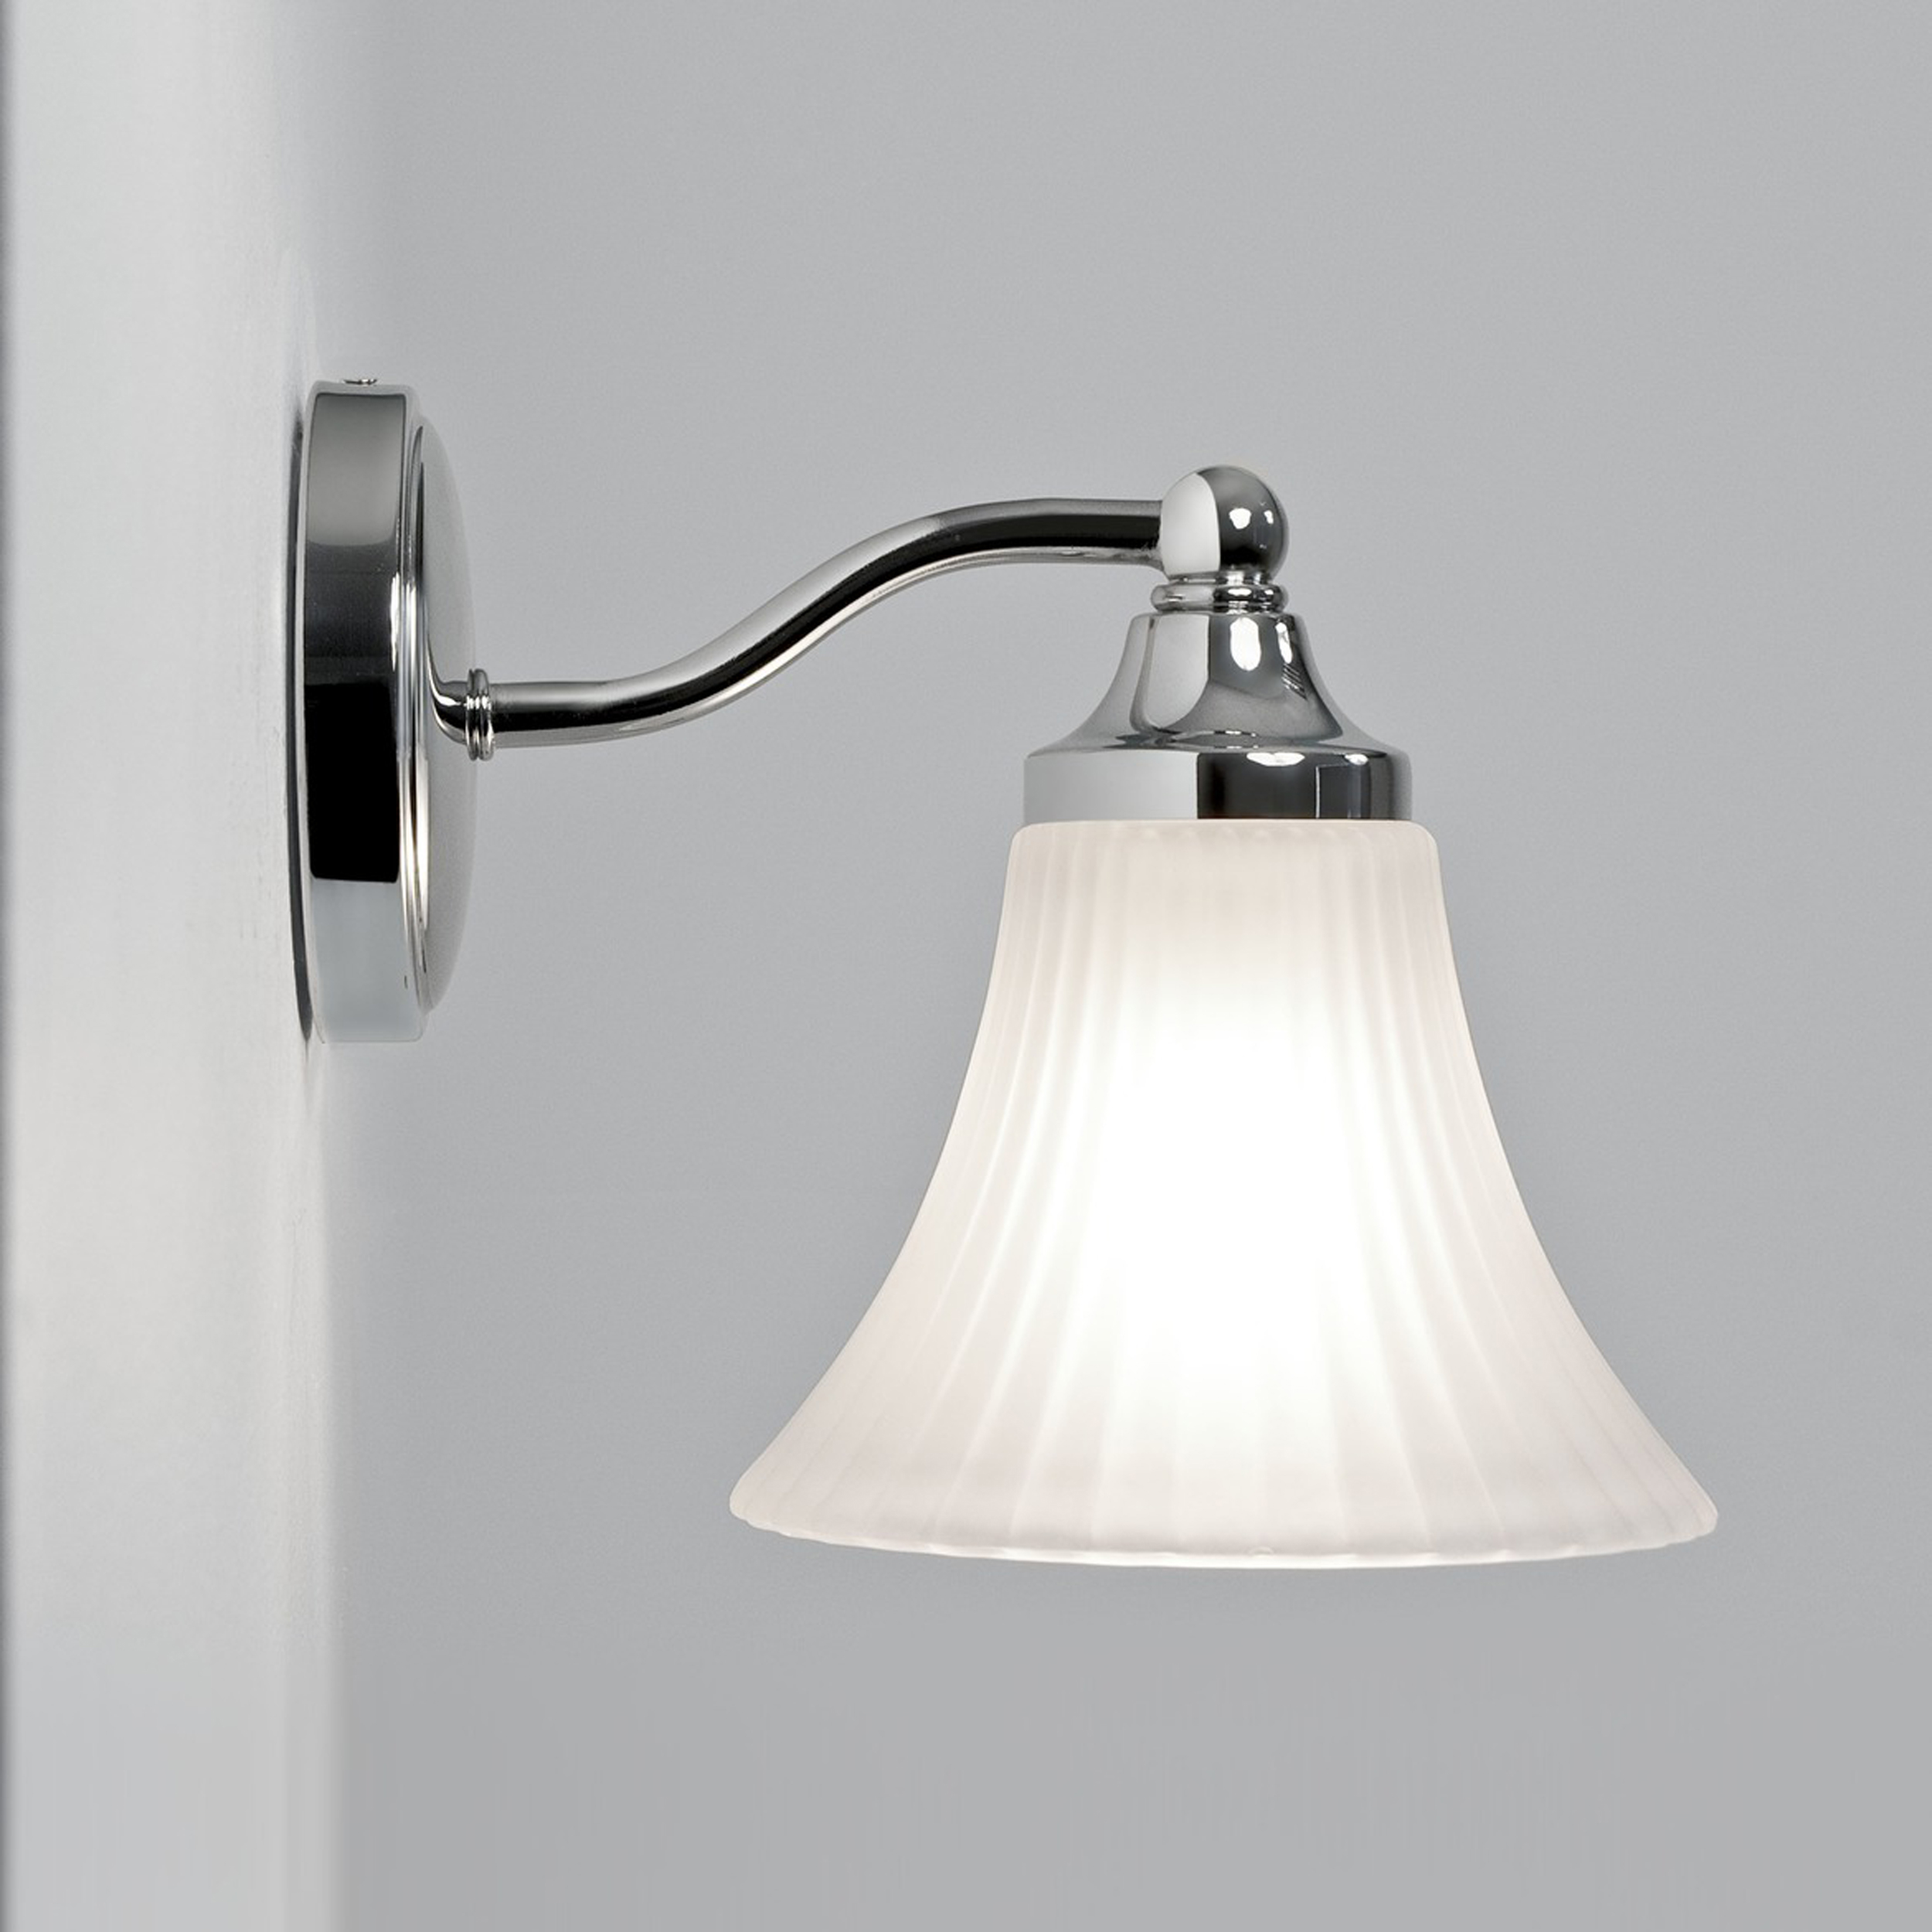 Astro Nena Wall Light Polished Chrome